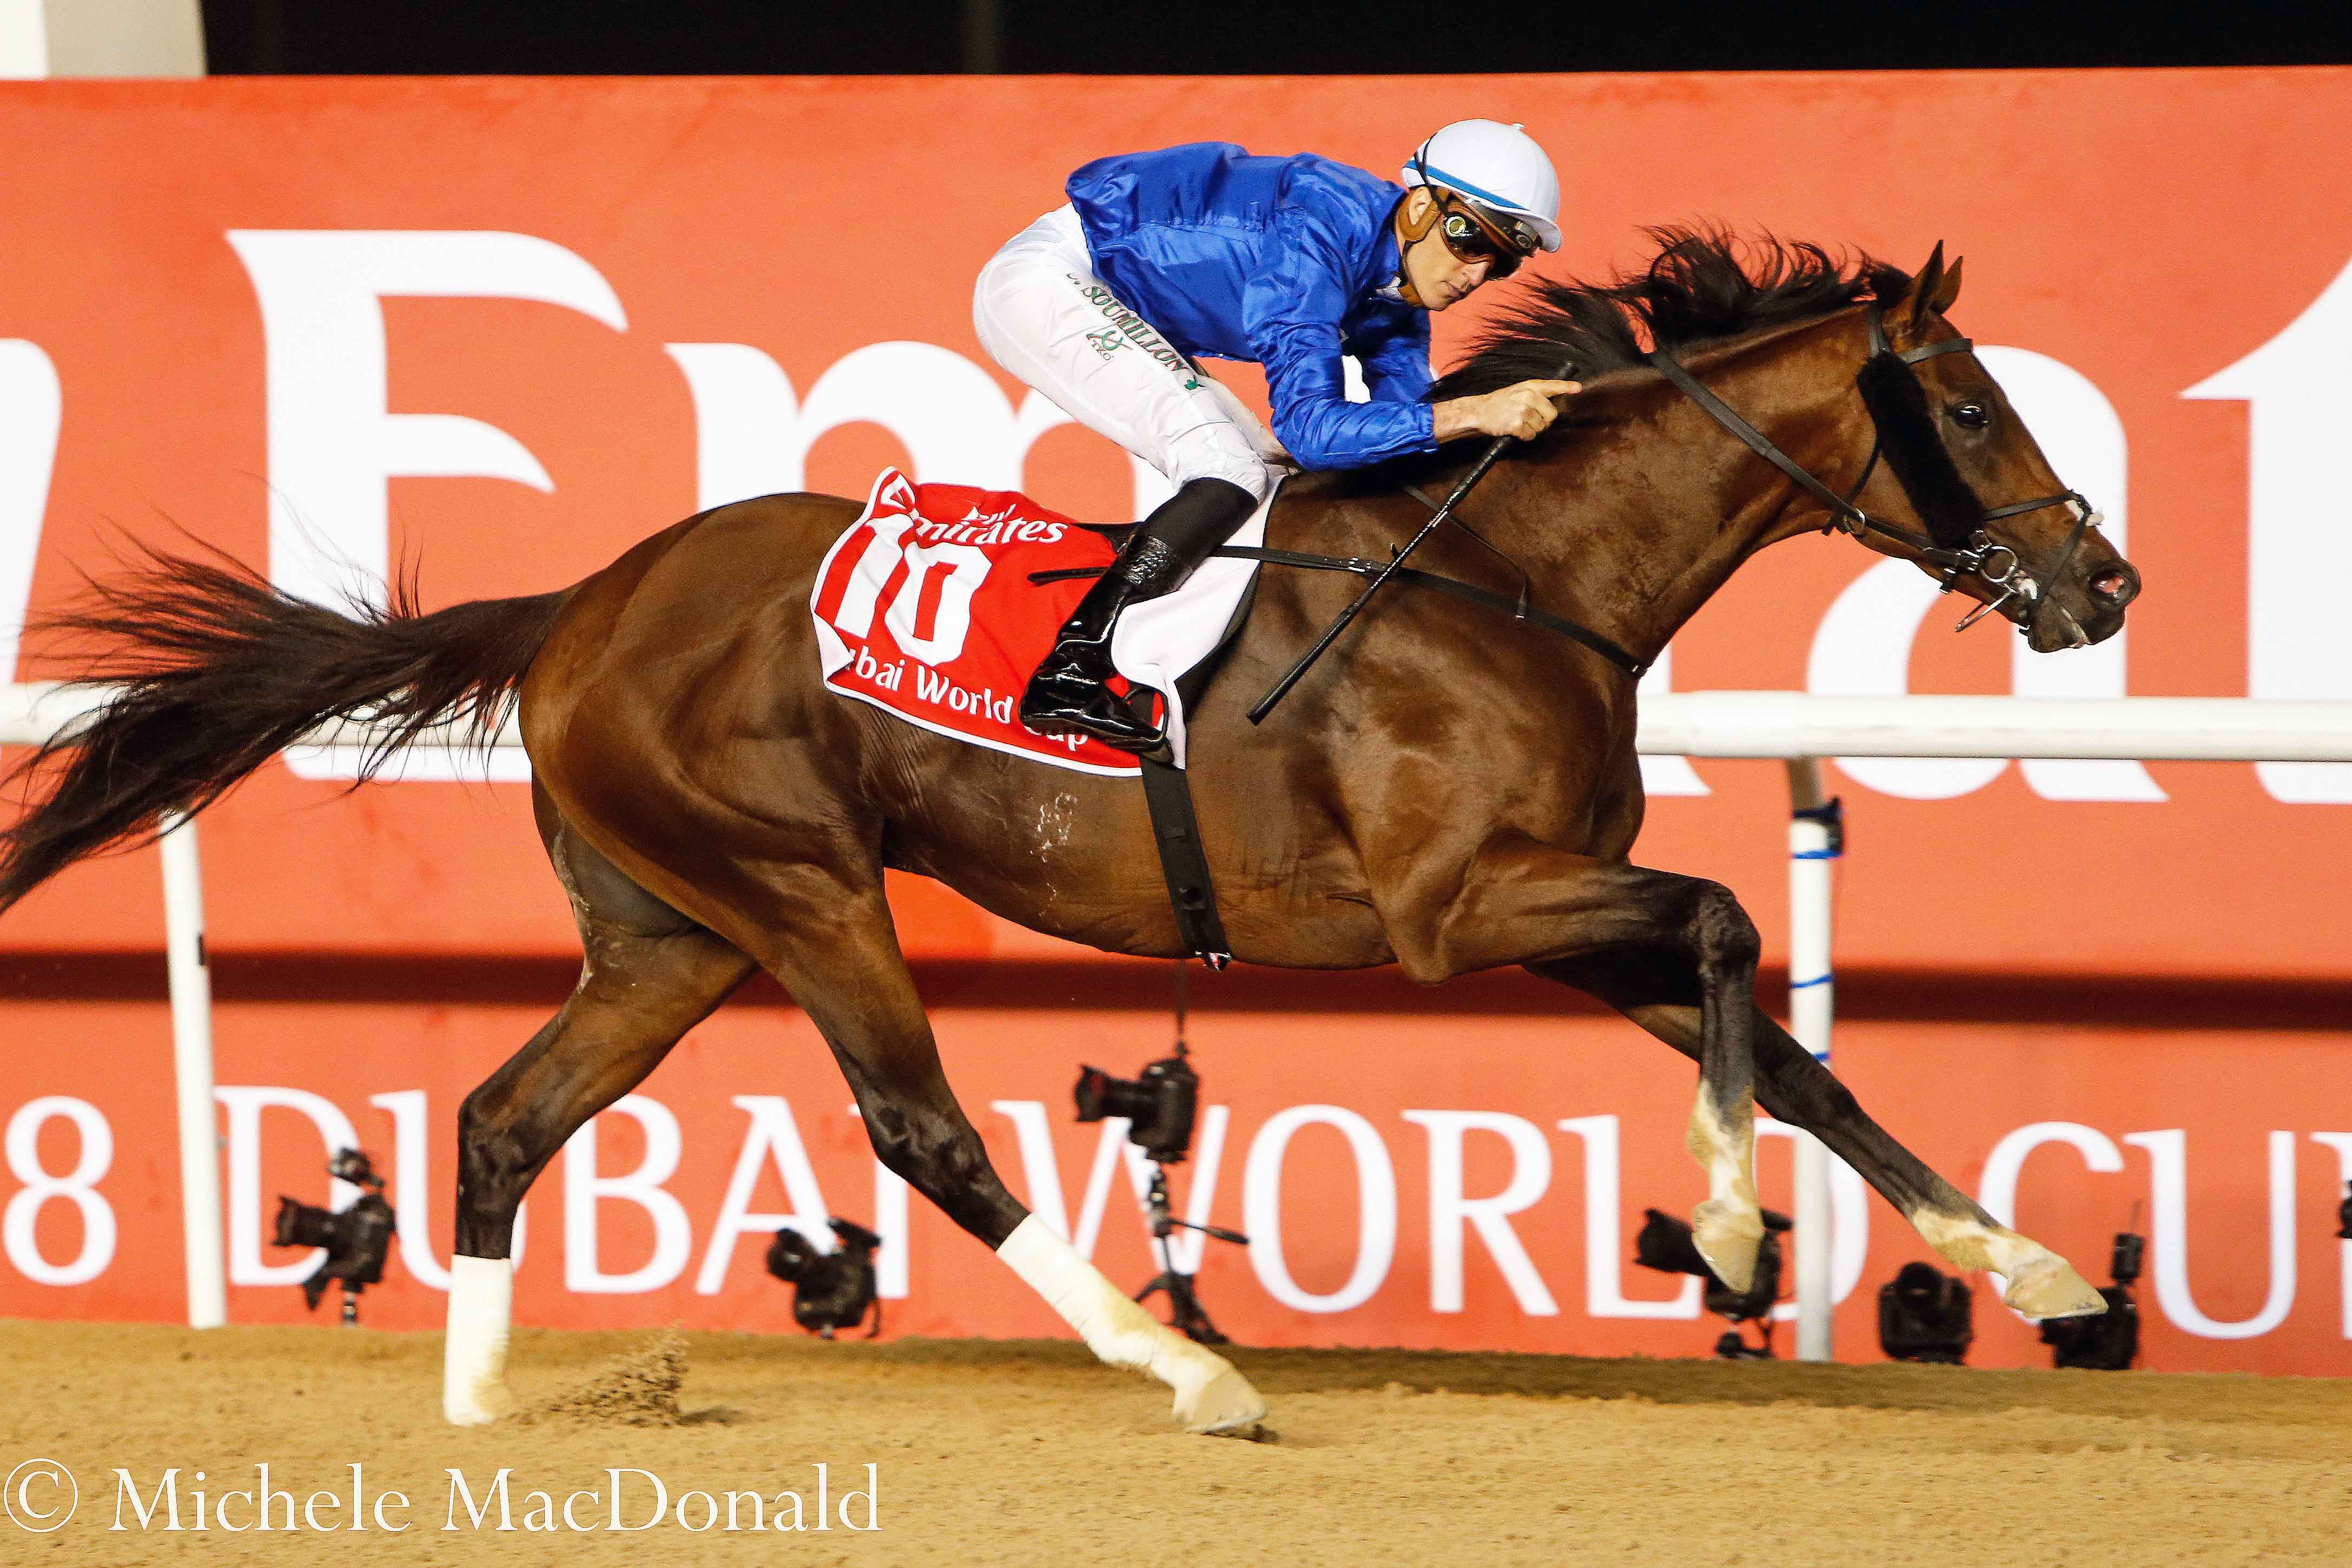 Thunder Snow comes home unchallenged in the Dubai World Cup on the Meydan dirt. He has already won two G1s on turf (including one on very soft ground). Photo: Michele MacDonald